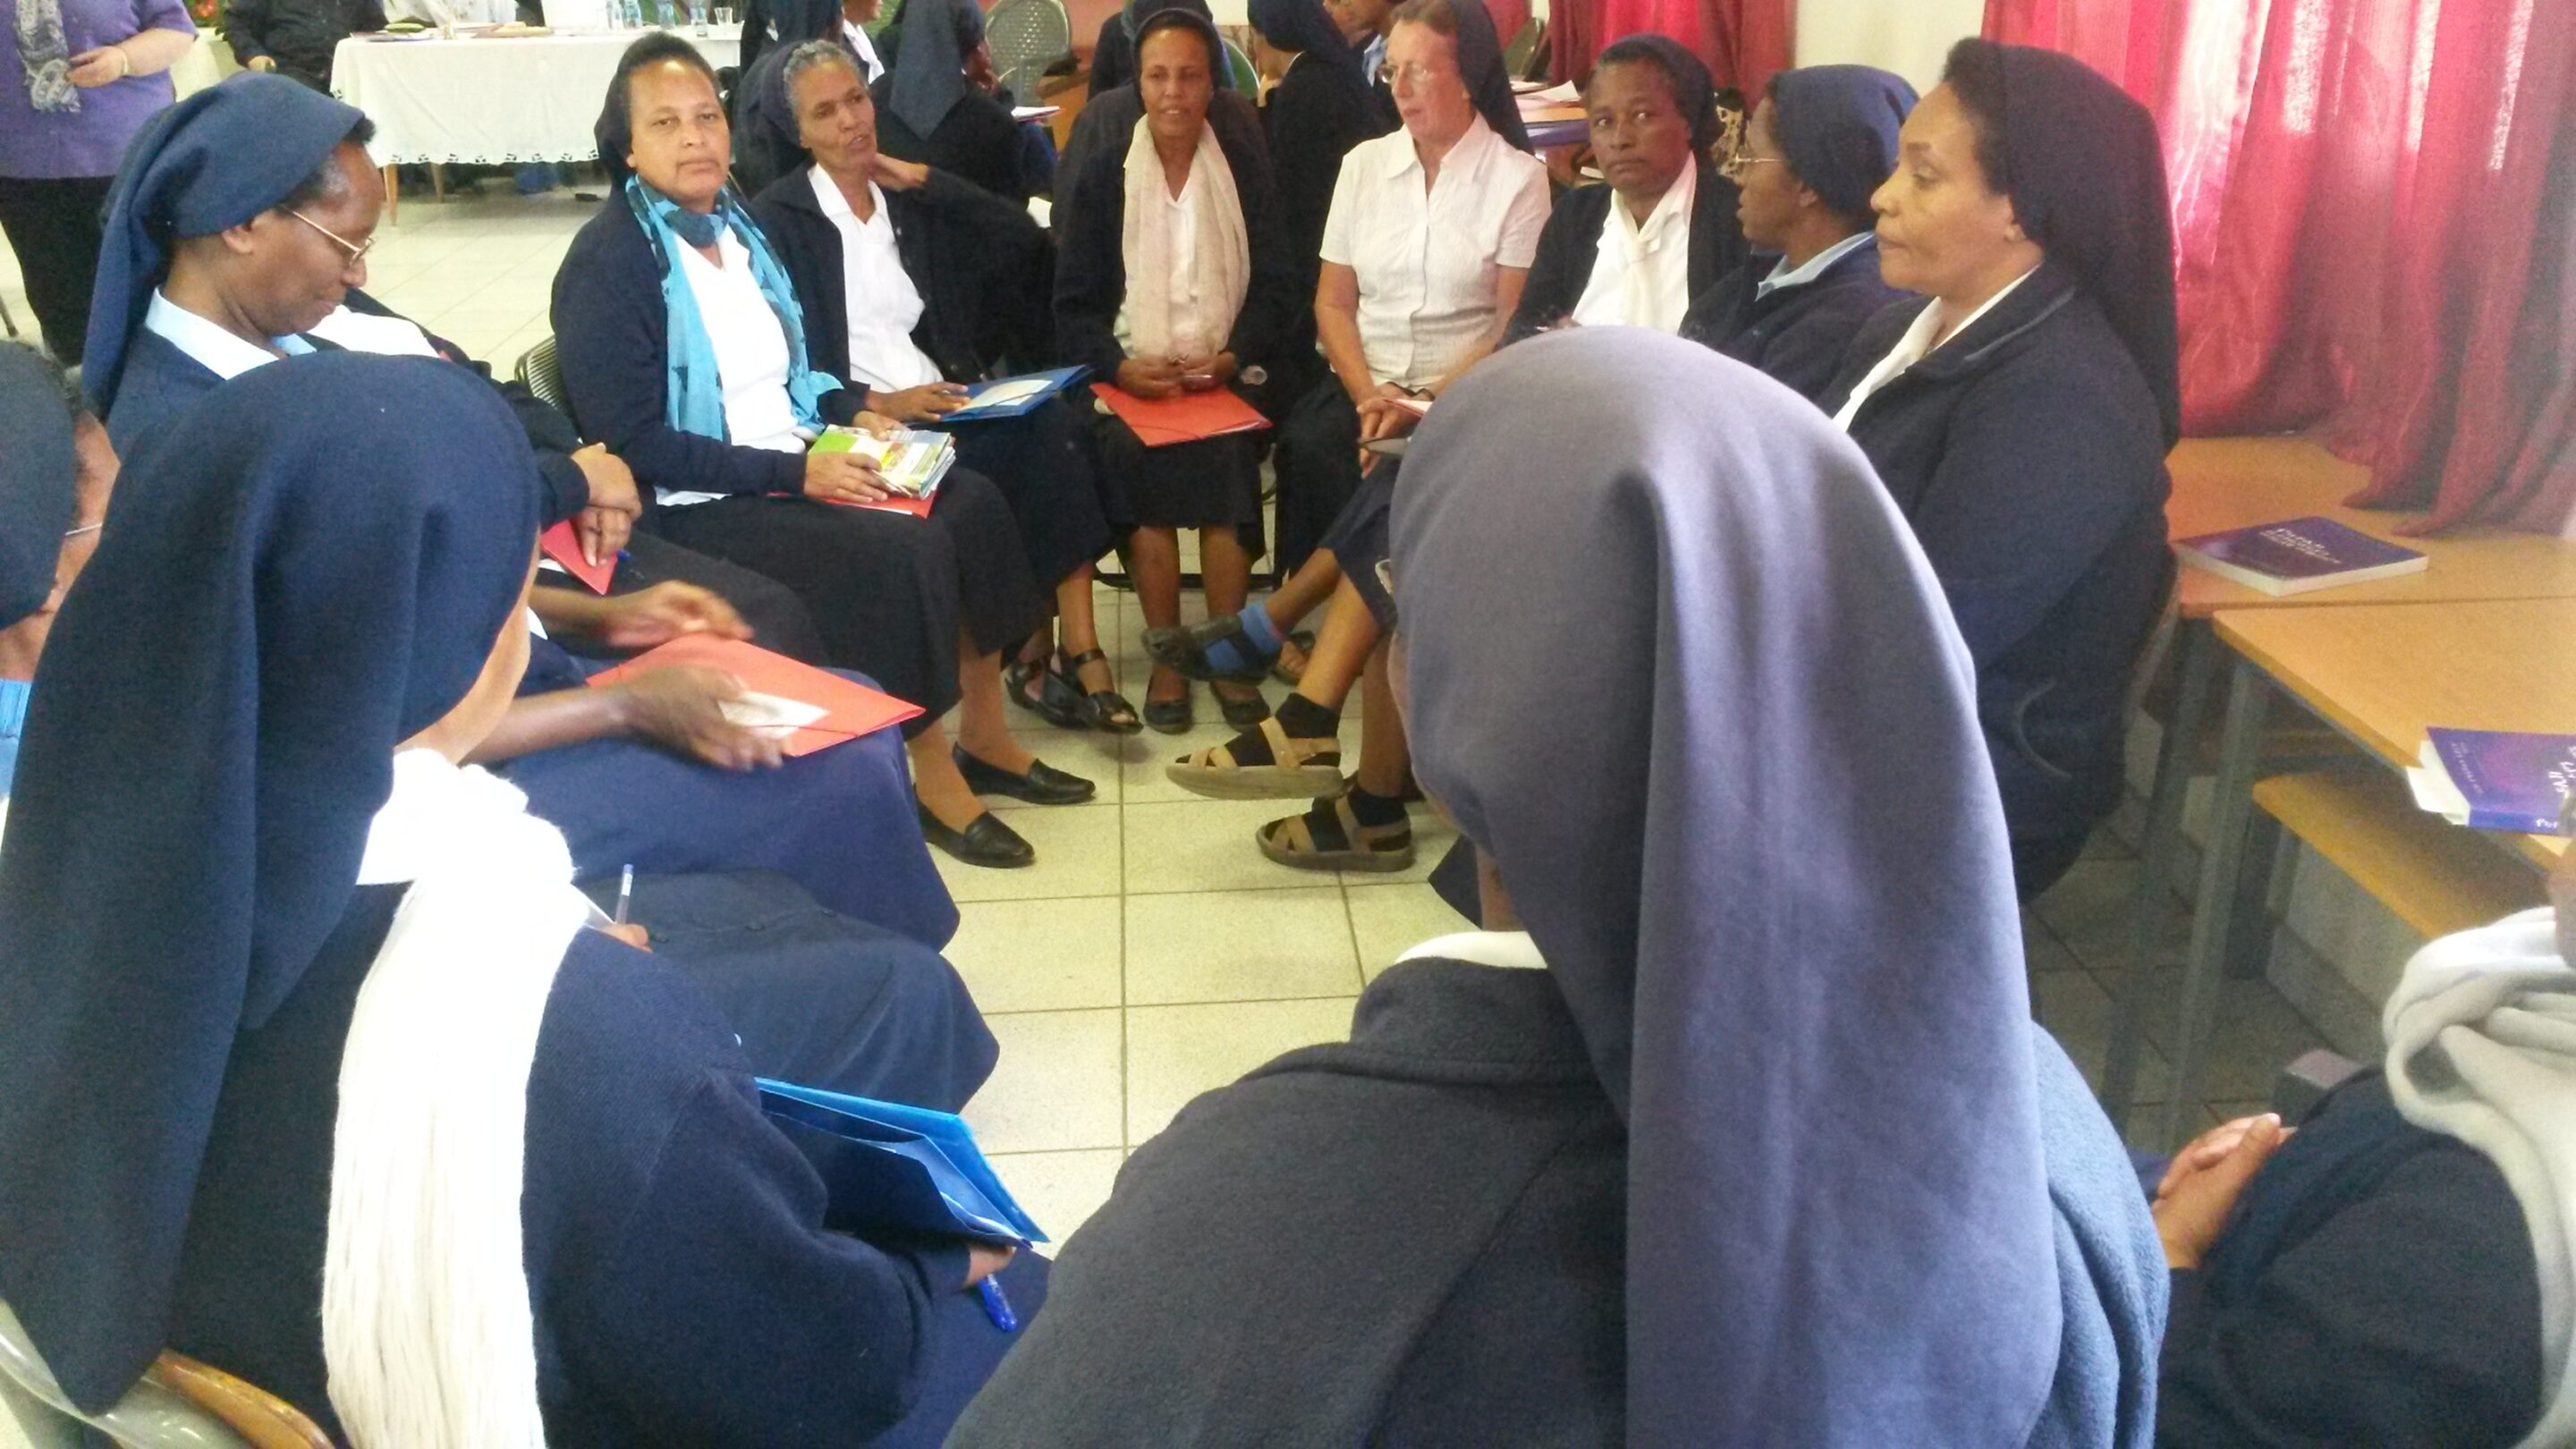 Vincentian Collaboration in Ethiopia – obligation not option